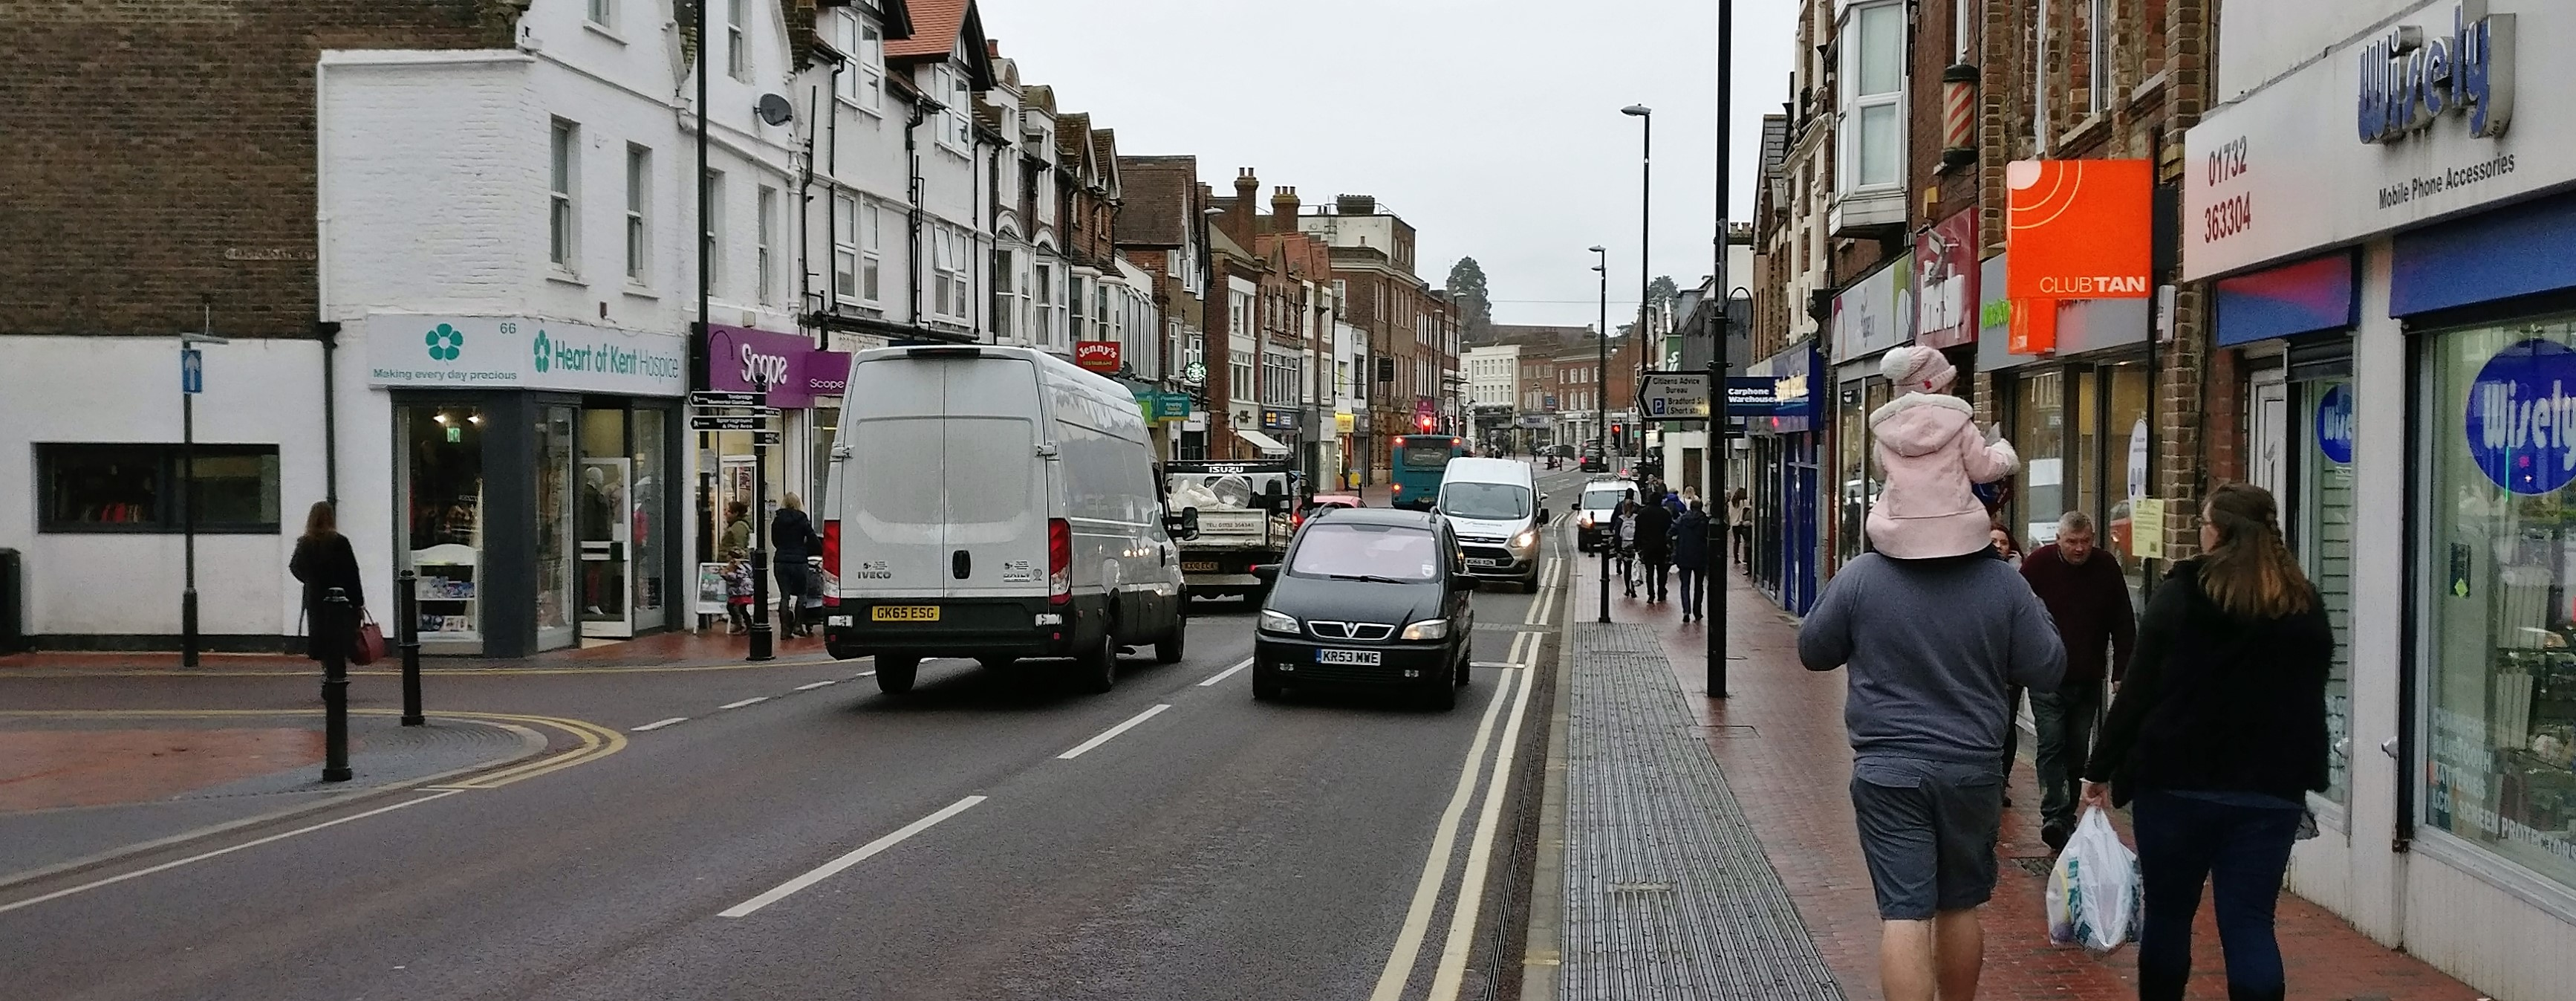 A Traffic Count On Tonbridge High Street 13 600 Vehicles Per Day